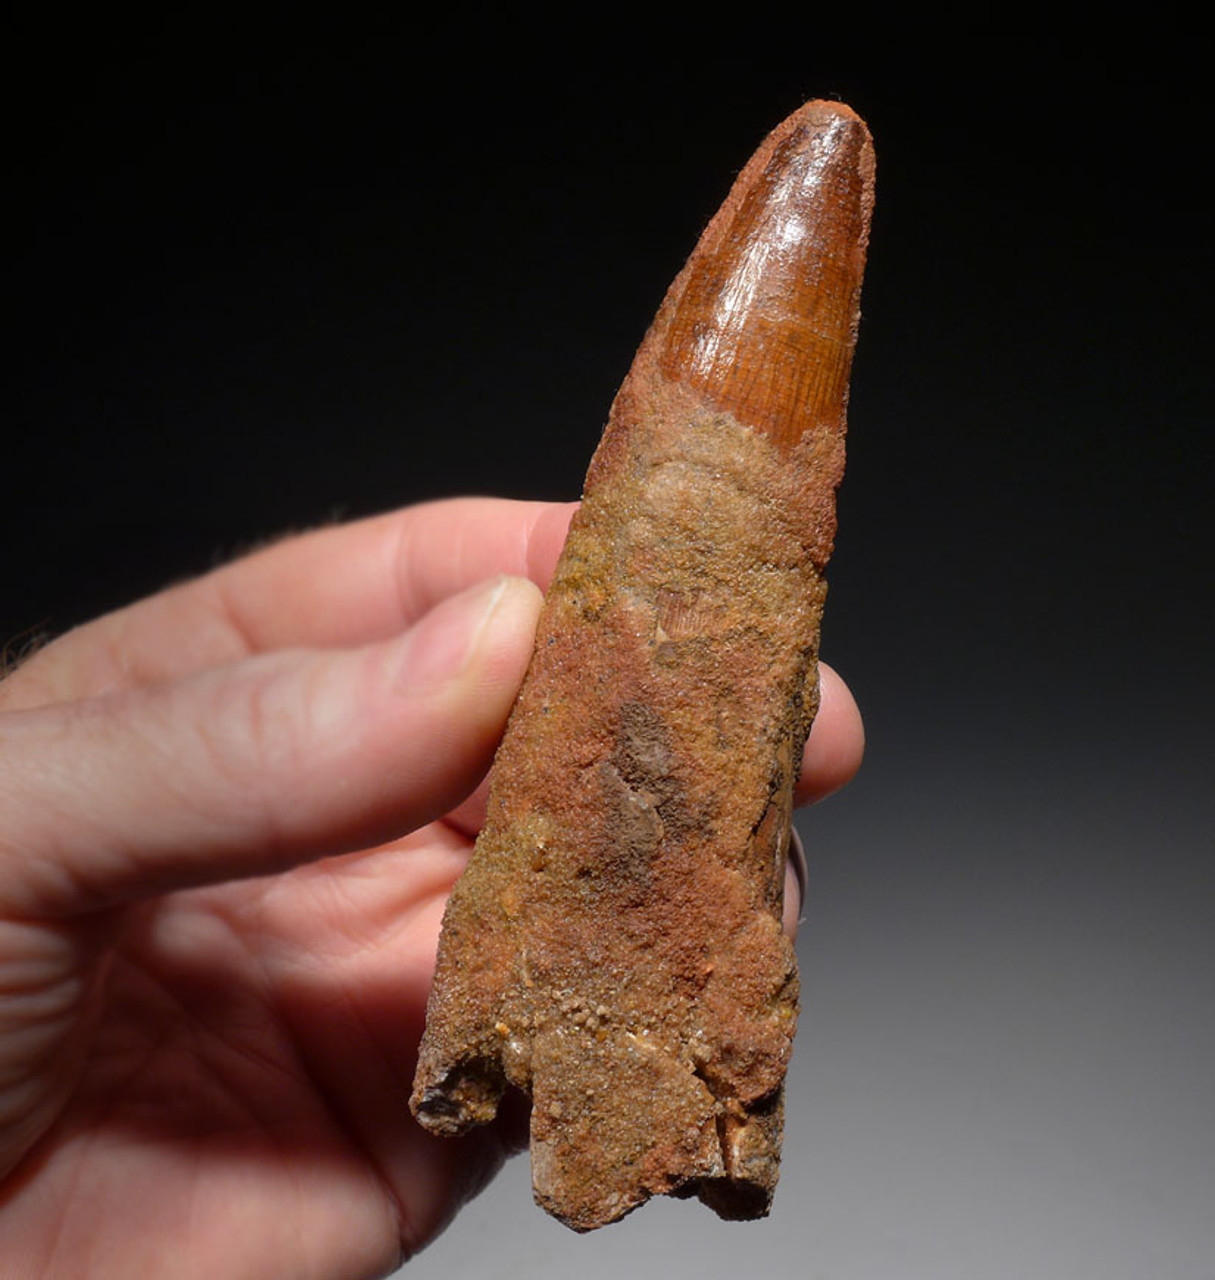 DT5-291 - IMPRESSIVE 4.5 INCH SPINOSAURUS FOSSIL TOOTH FROM A HUGE DINOSAUR